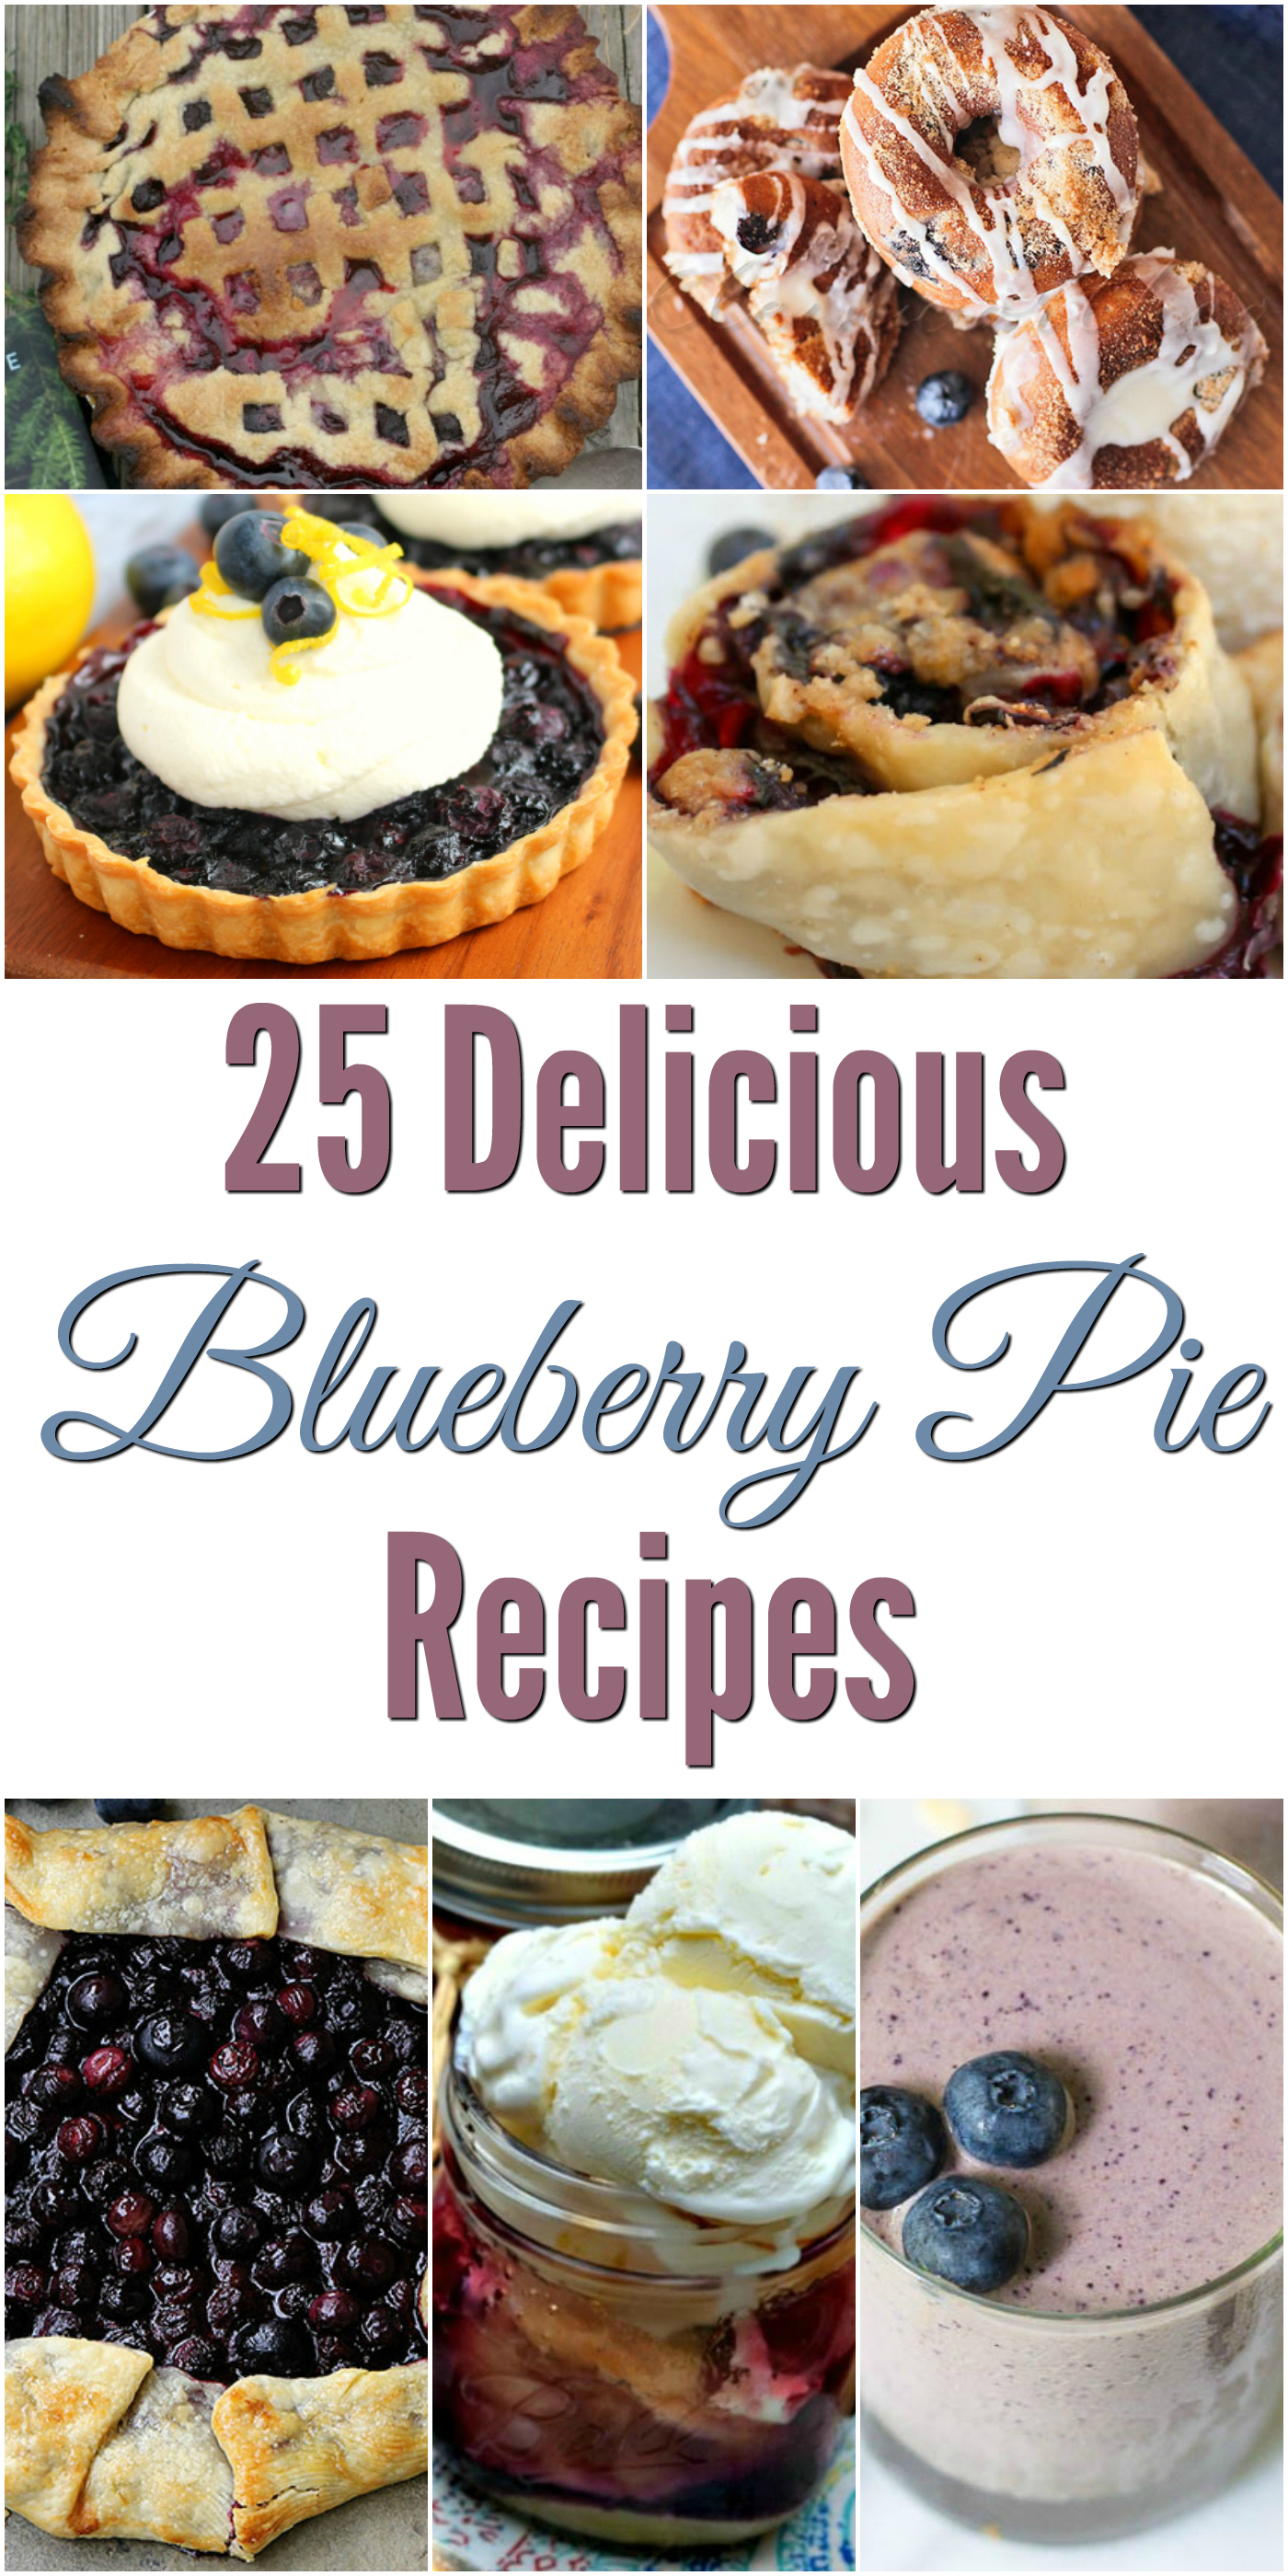 Looking for some delicious blueberry recipes? Check out these 25 Delicious Blueberry Pie Recipes here!